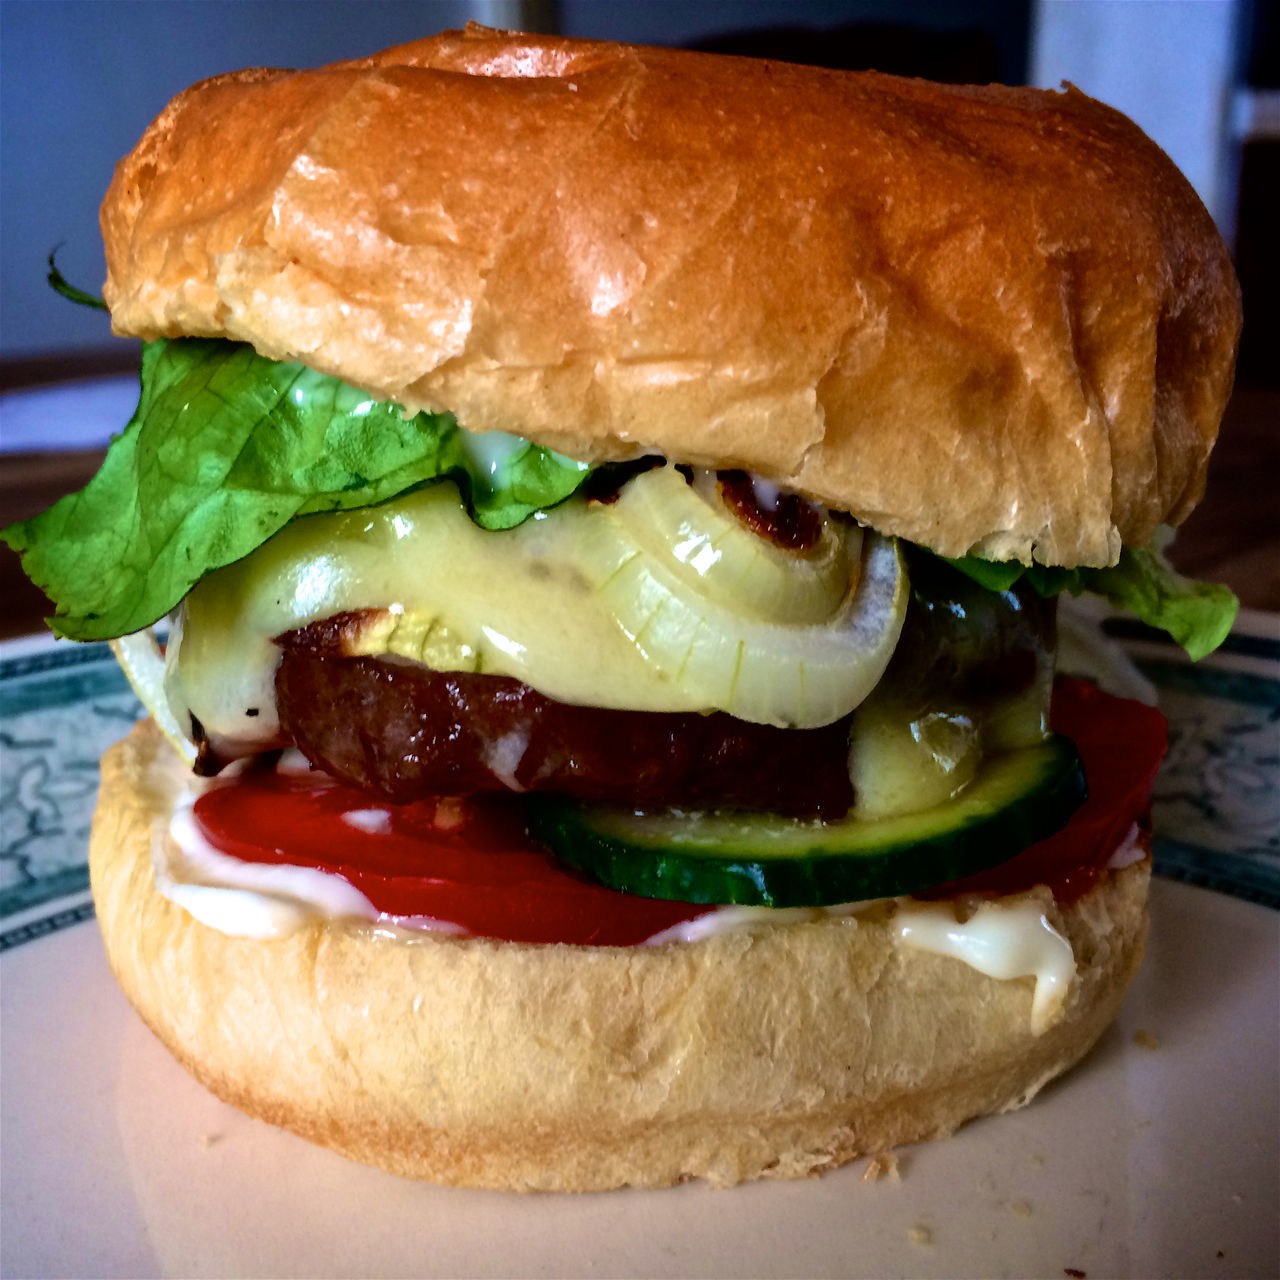 burger, food and drink, food, close-up, indoors, hamburger, sandwich, unhealthy eating, bread, ready-to-eat, bun, freshness, lettuce, no people, fast food, day